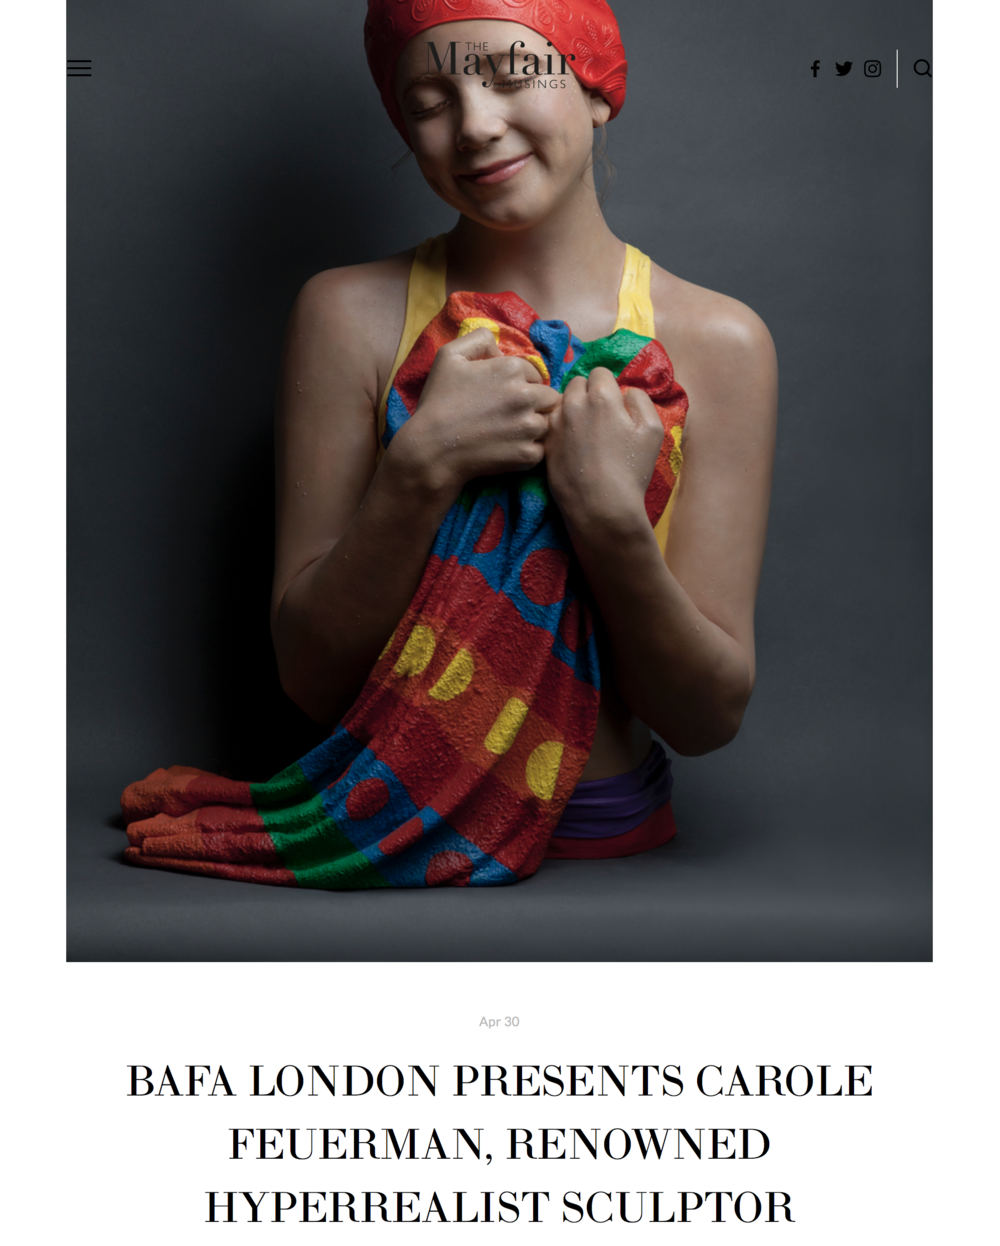 BAFA London Presents Carole Feuerman, Renowned Hyperrealist Sculptor